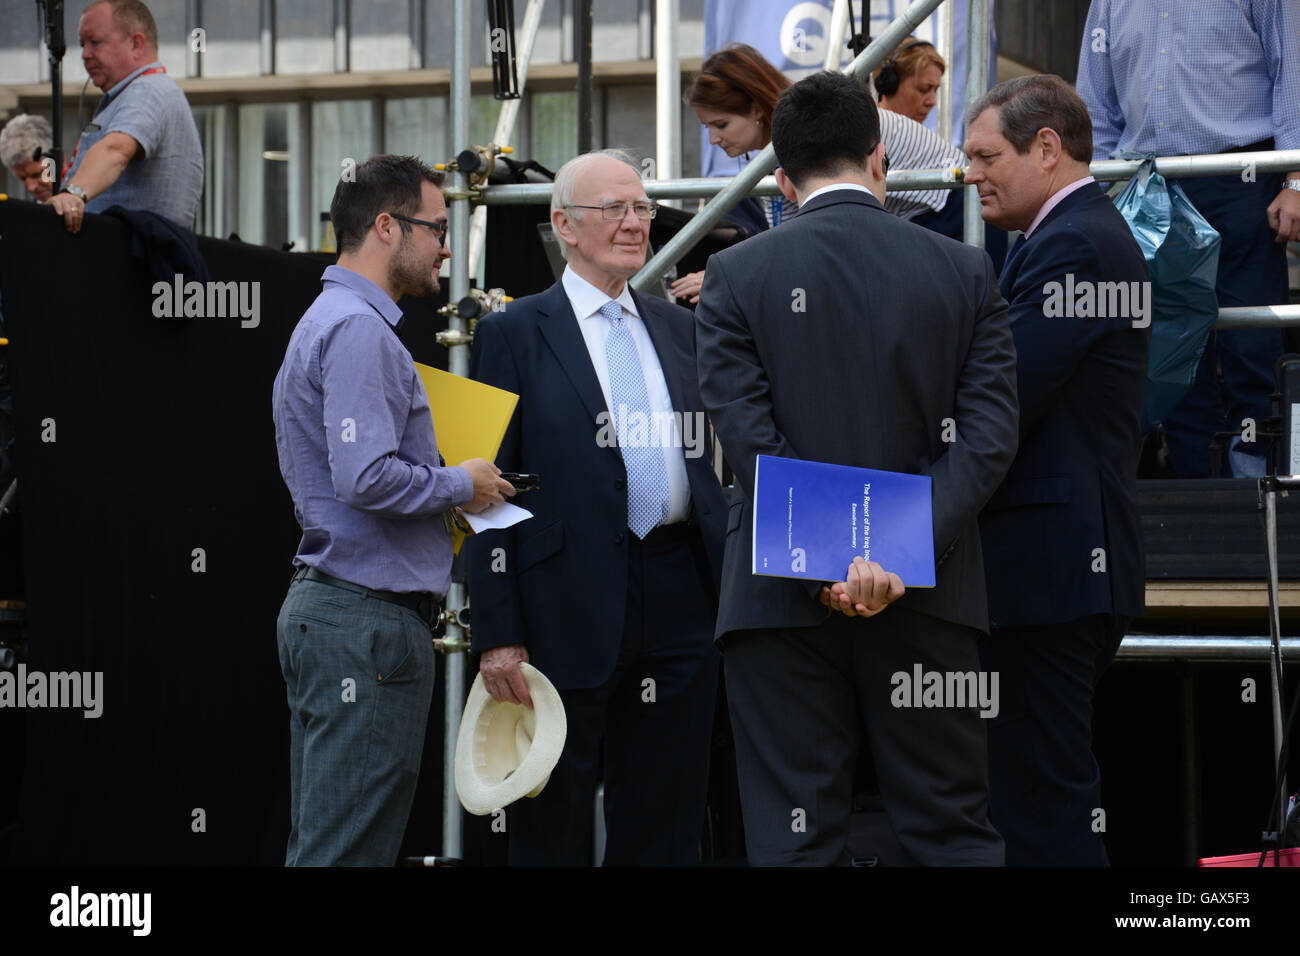 London, UK. 06th July, 2016. Ming Campbell waits to be interviewed outside Queen Elizabeth II Hall by Sky reporter - Stock Image